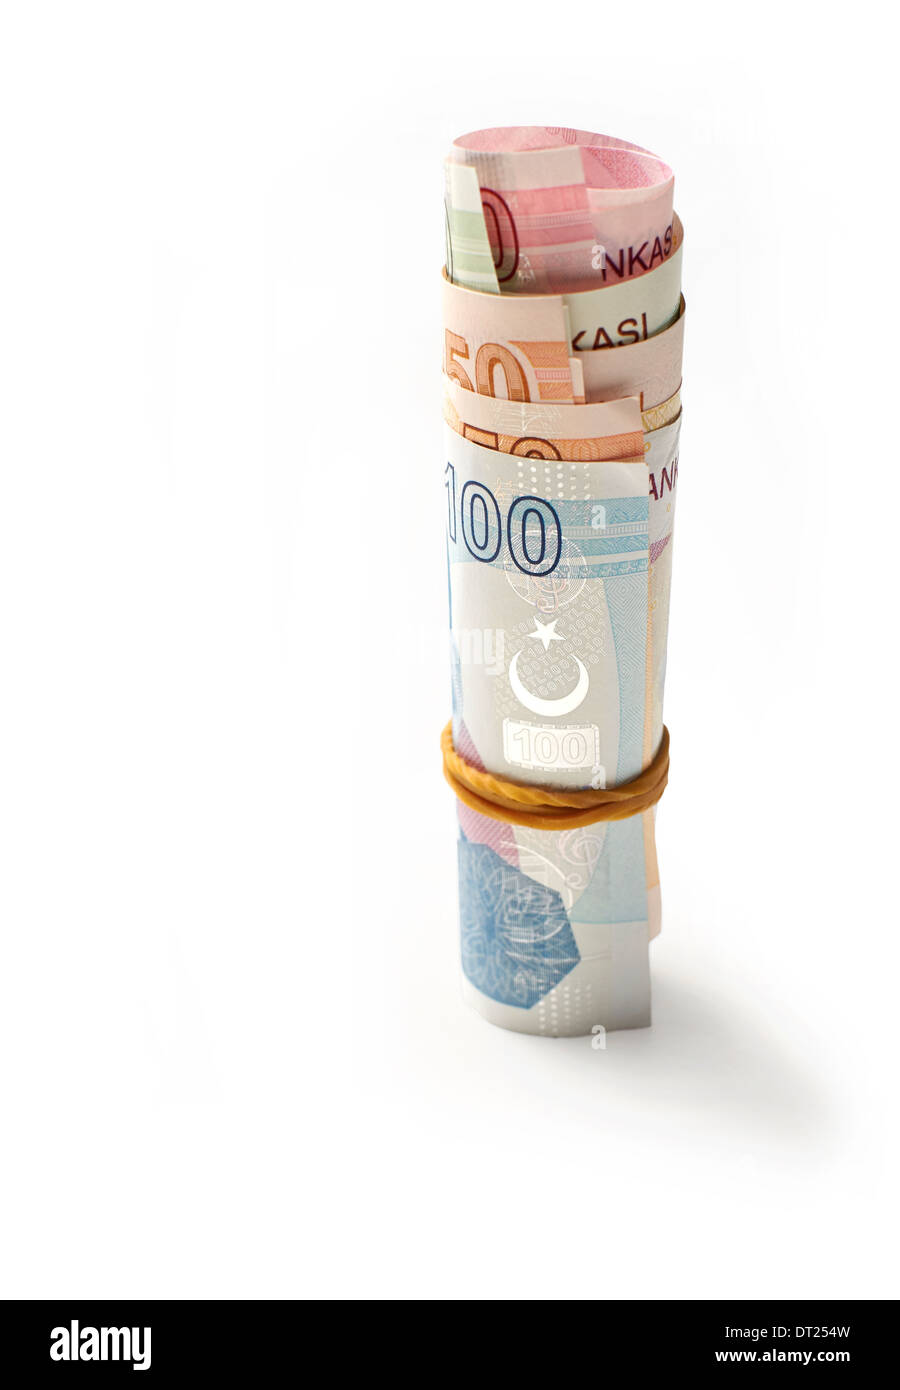 A roll of Turkish Lira Currency, on a white background. Stock Photo